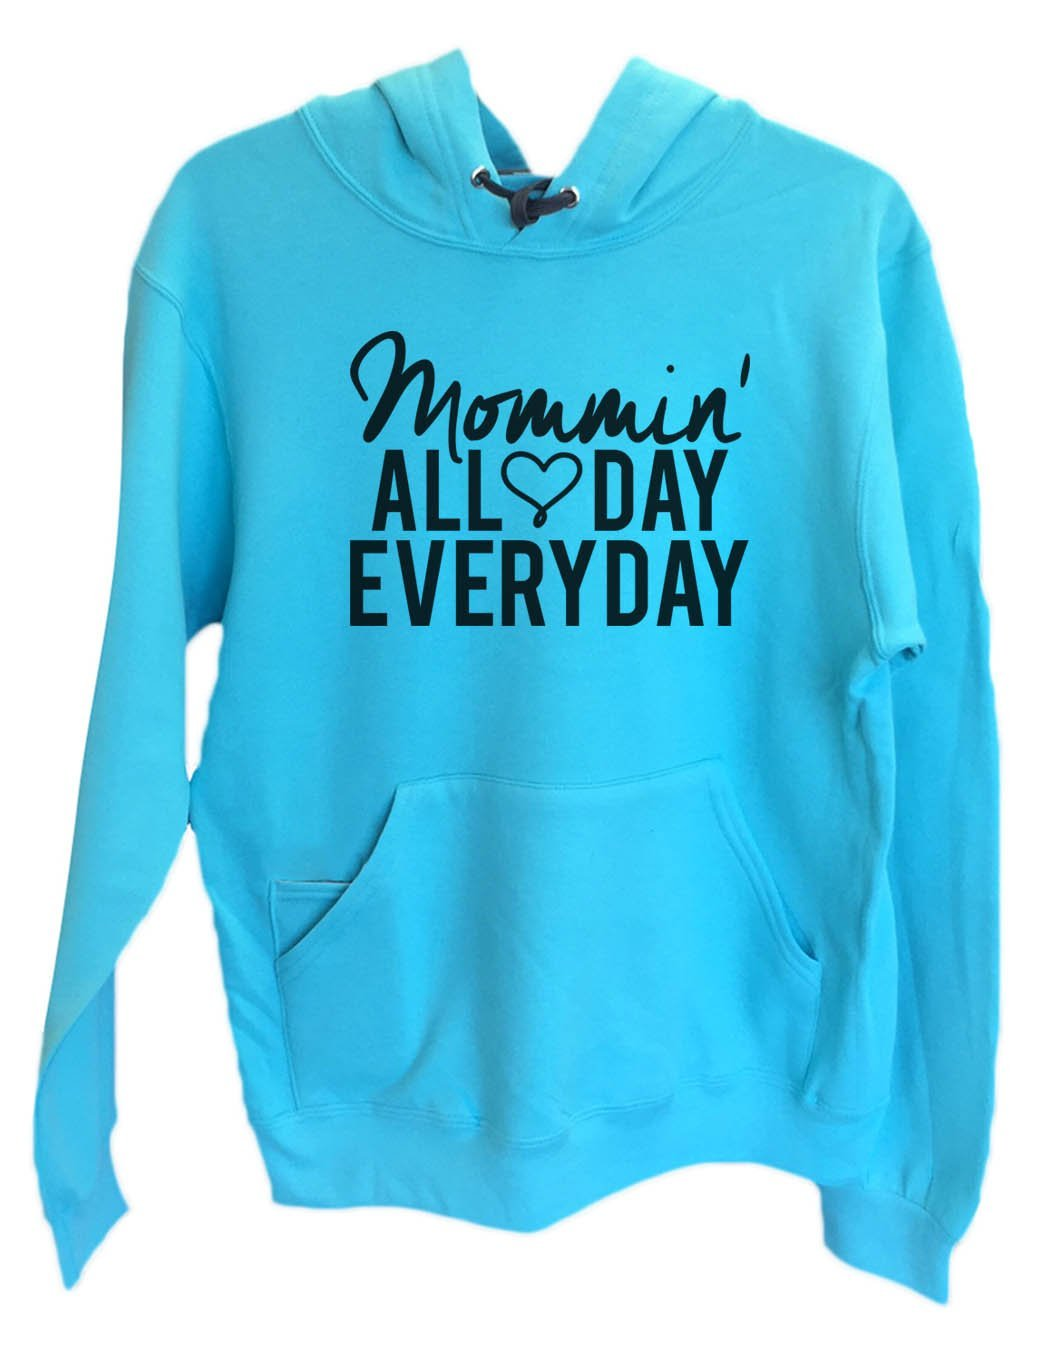 UNISEX HOODIE - Mommin' All Day Every Day - FUNNY MENS AND WOMENS HOODED SWEATSHIRTS - 2143 Funny Shirt Small / Turquoise